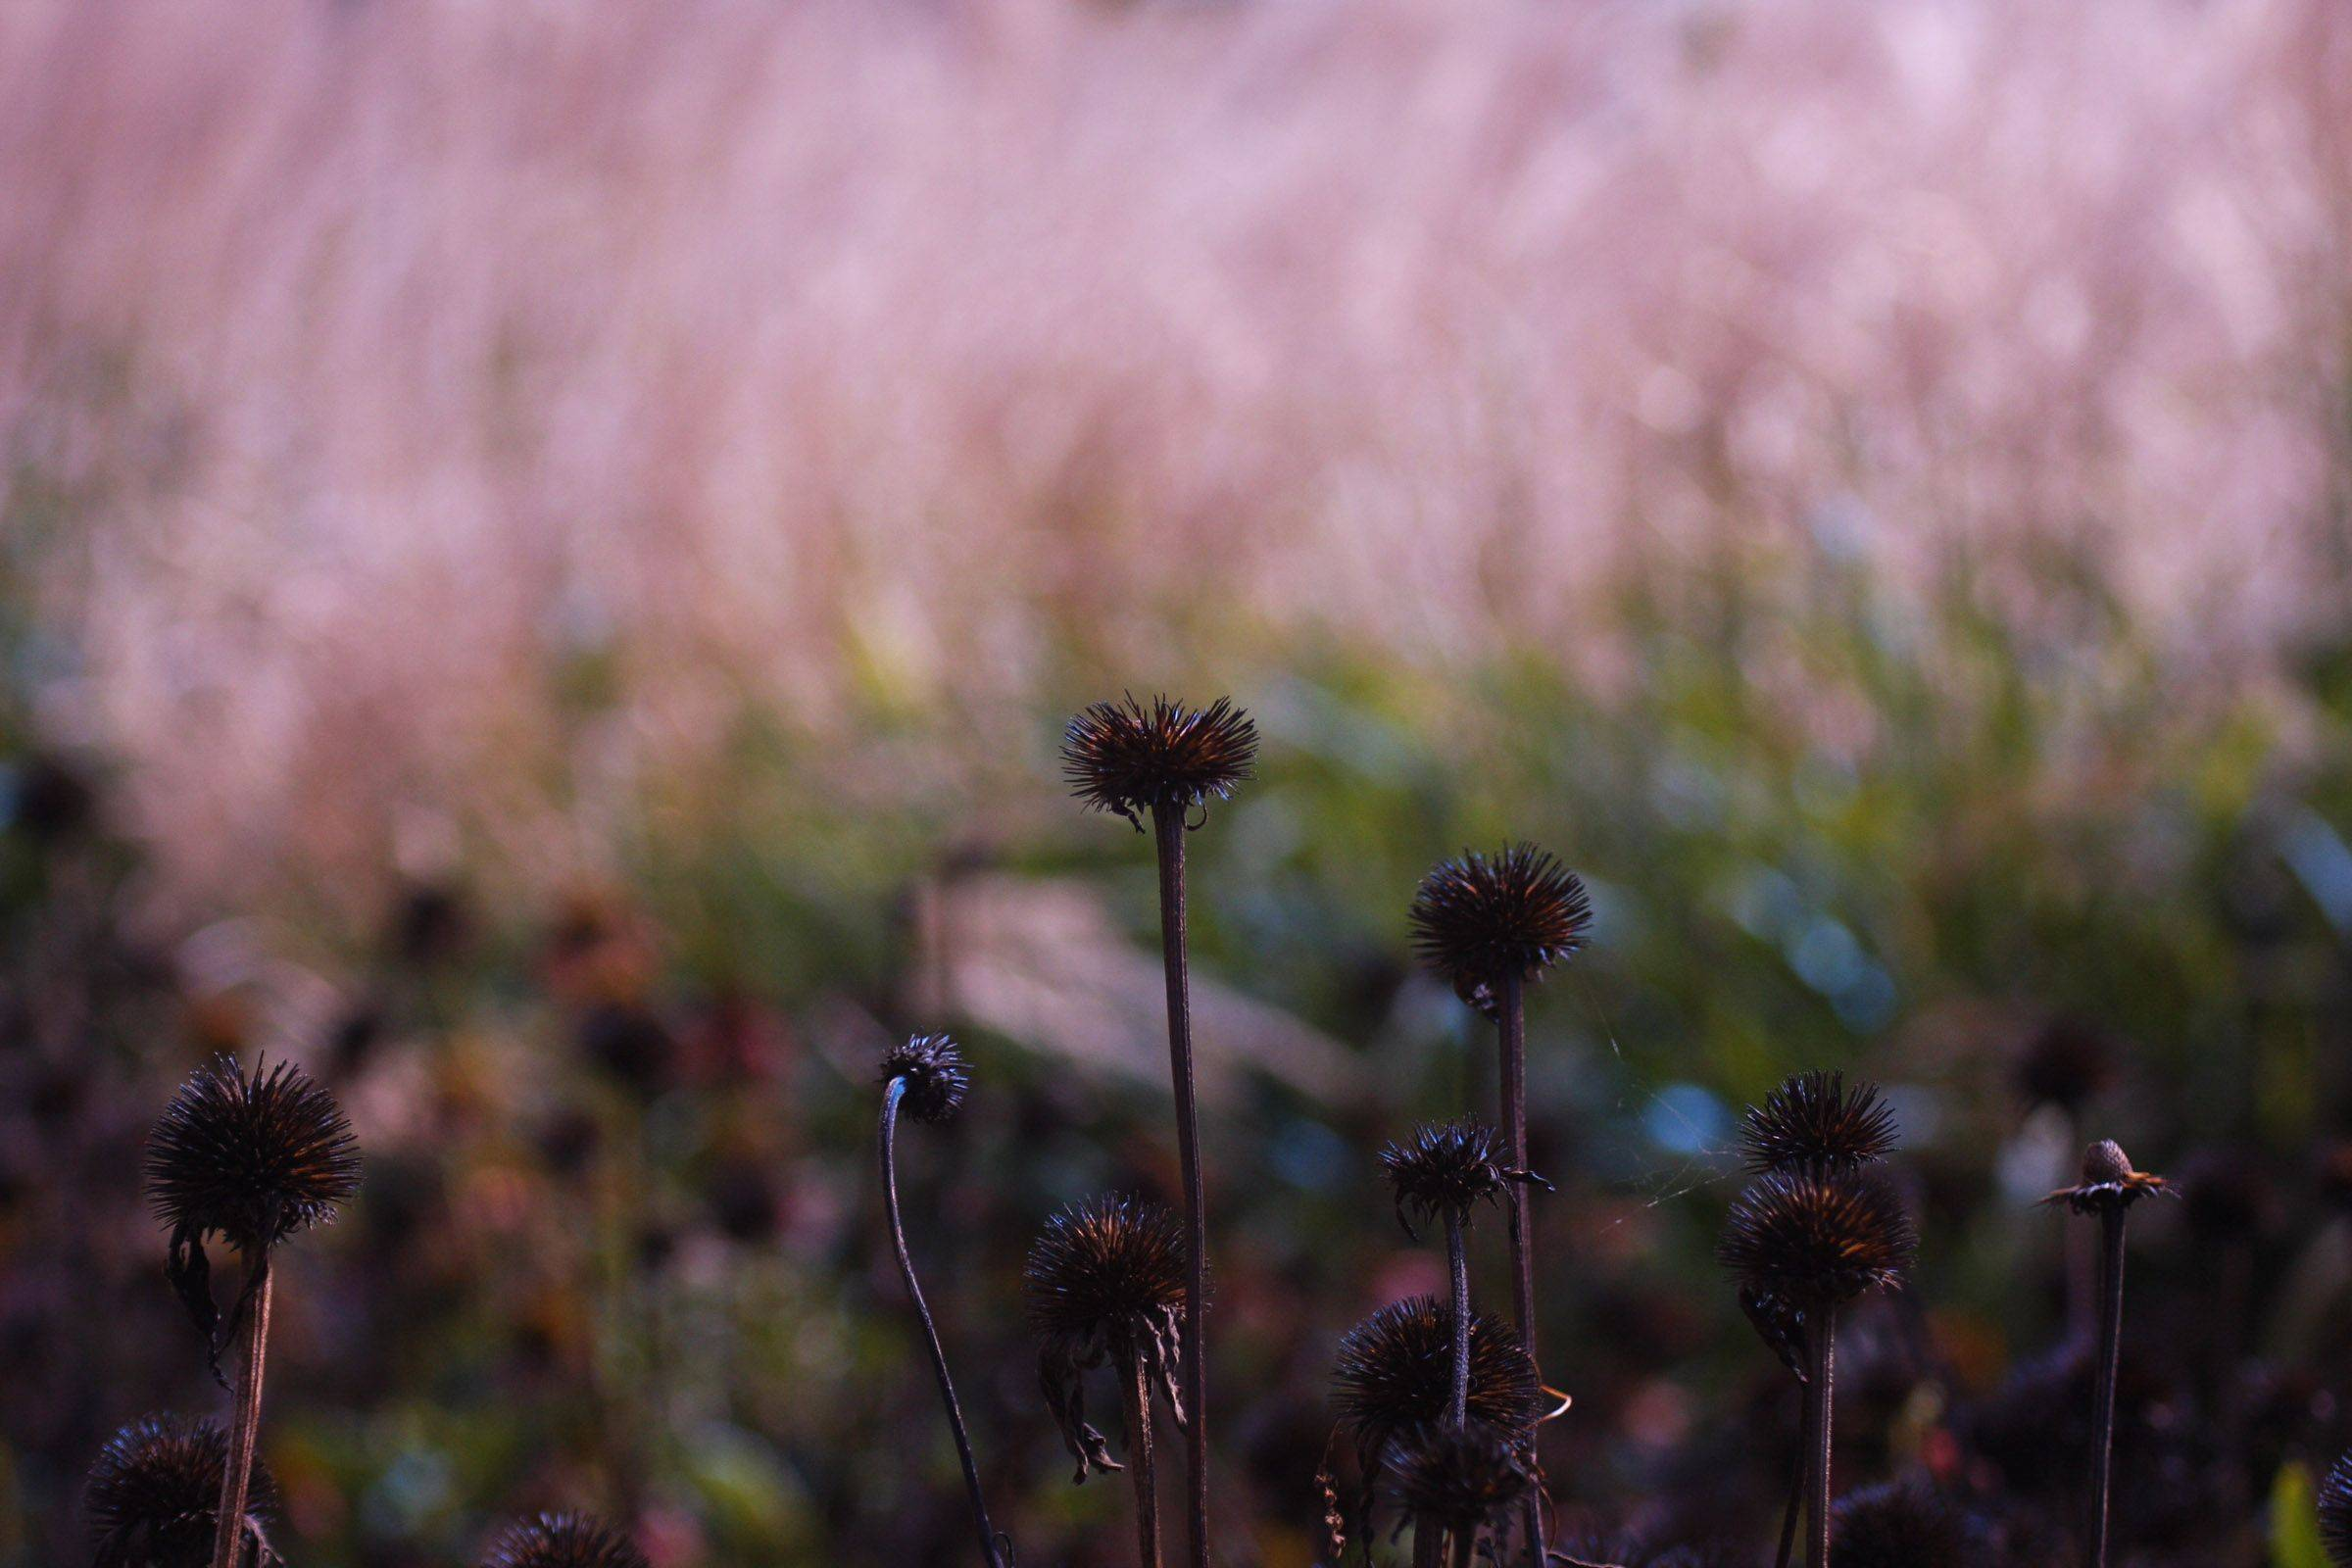 A color filter accentuates the pinks and blues of an echinacea plant at the Chicago Botanic Gardens last September.